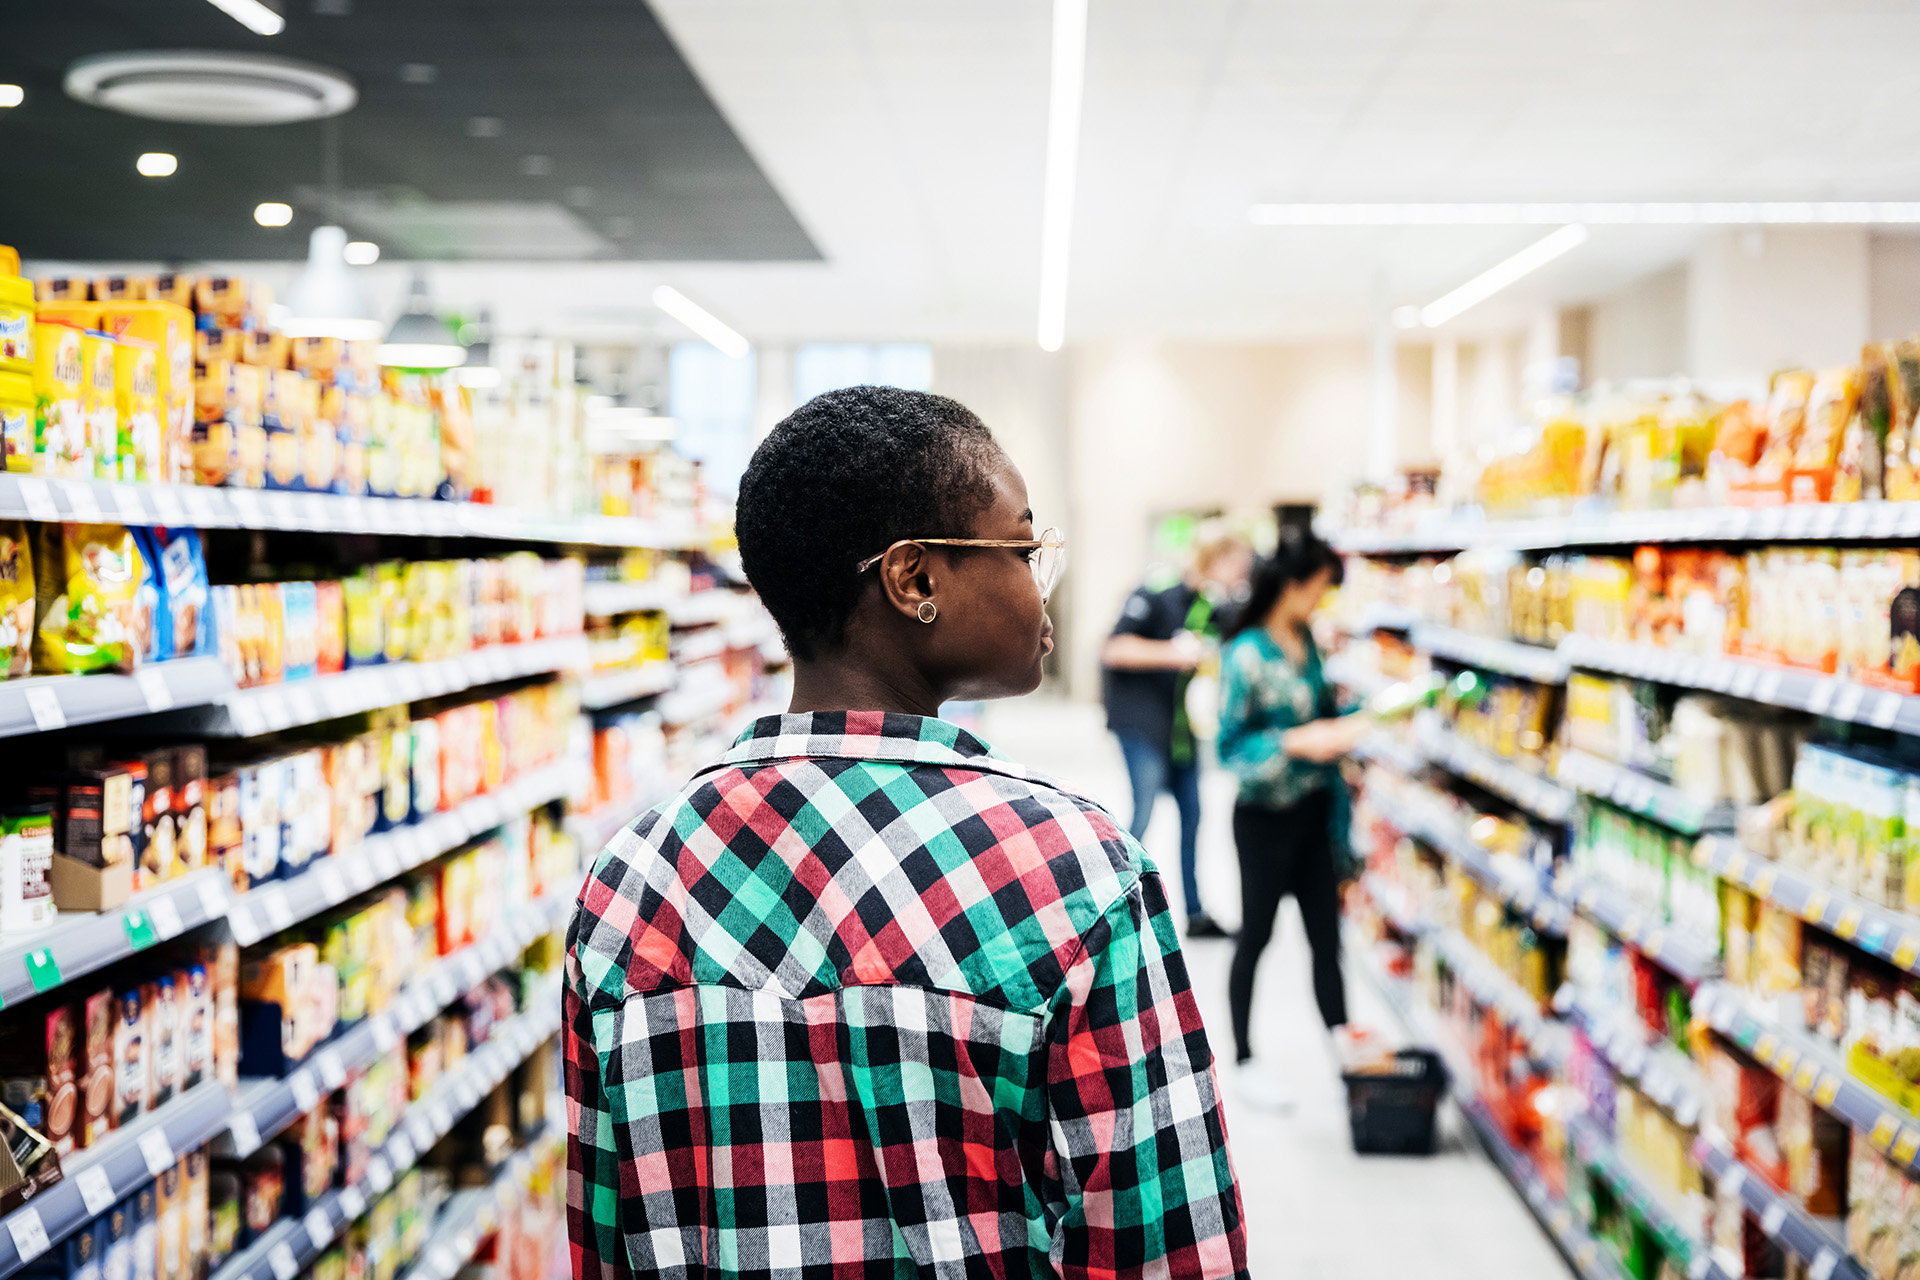 Young Woman Walking Down Supermarket Aisle